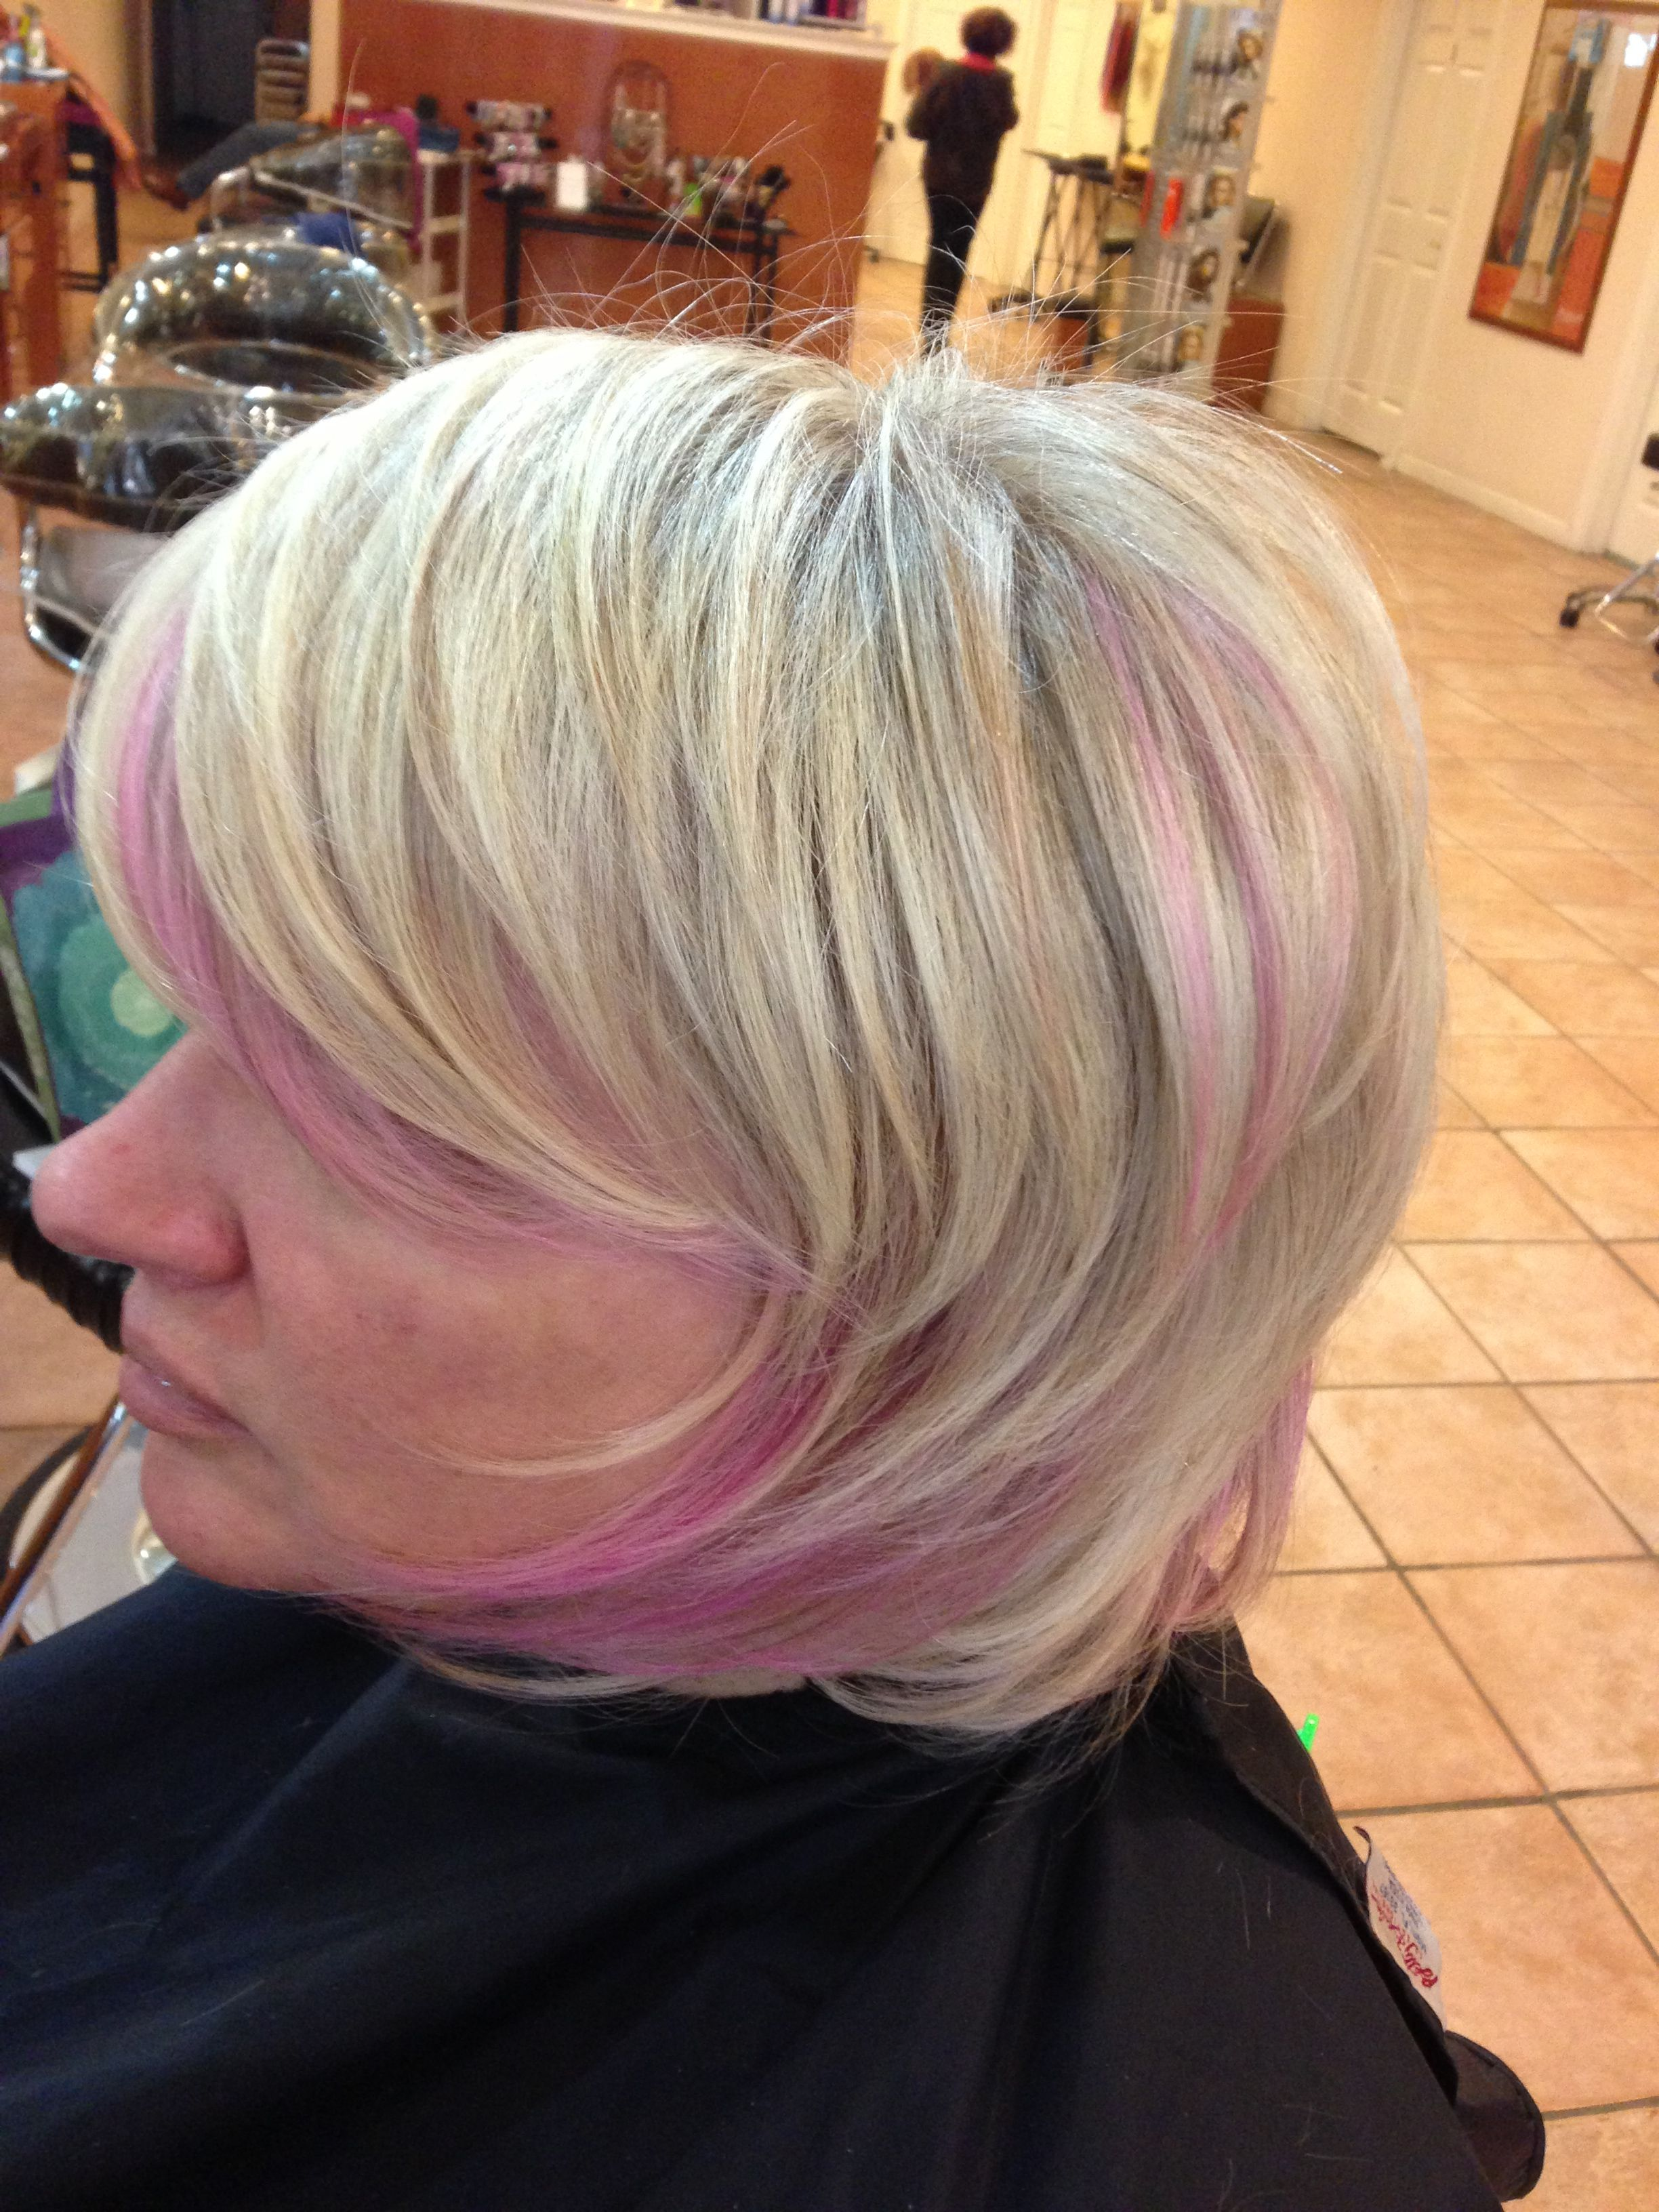 Blonde hair with pink lowlights